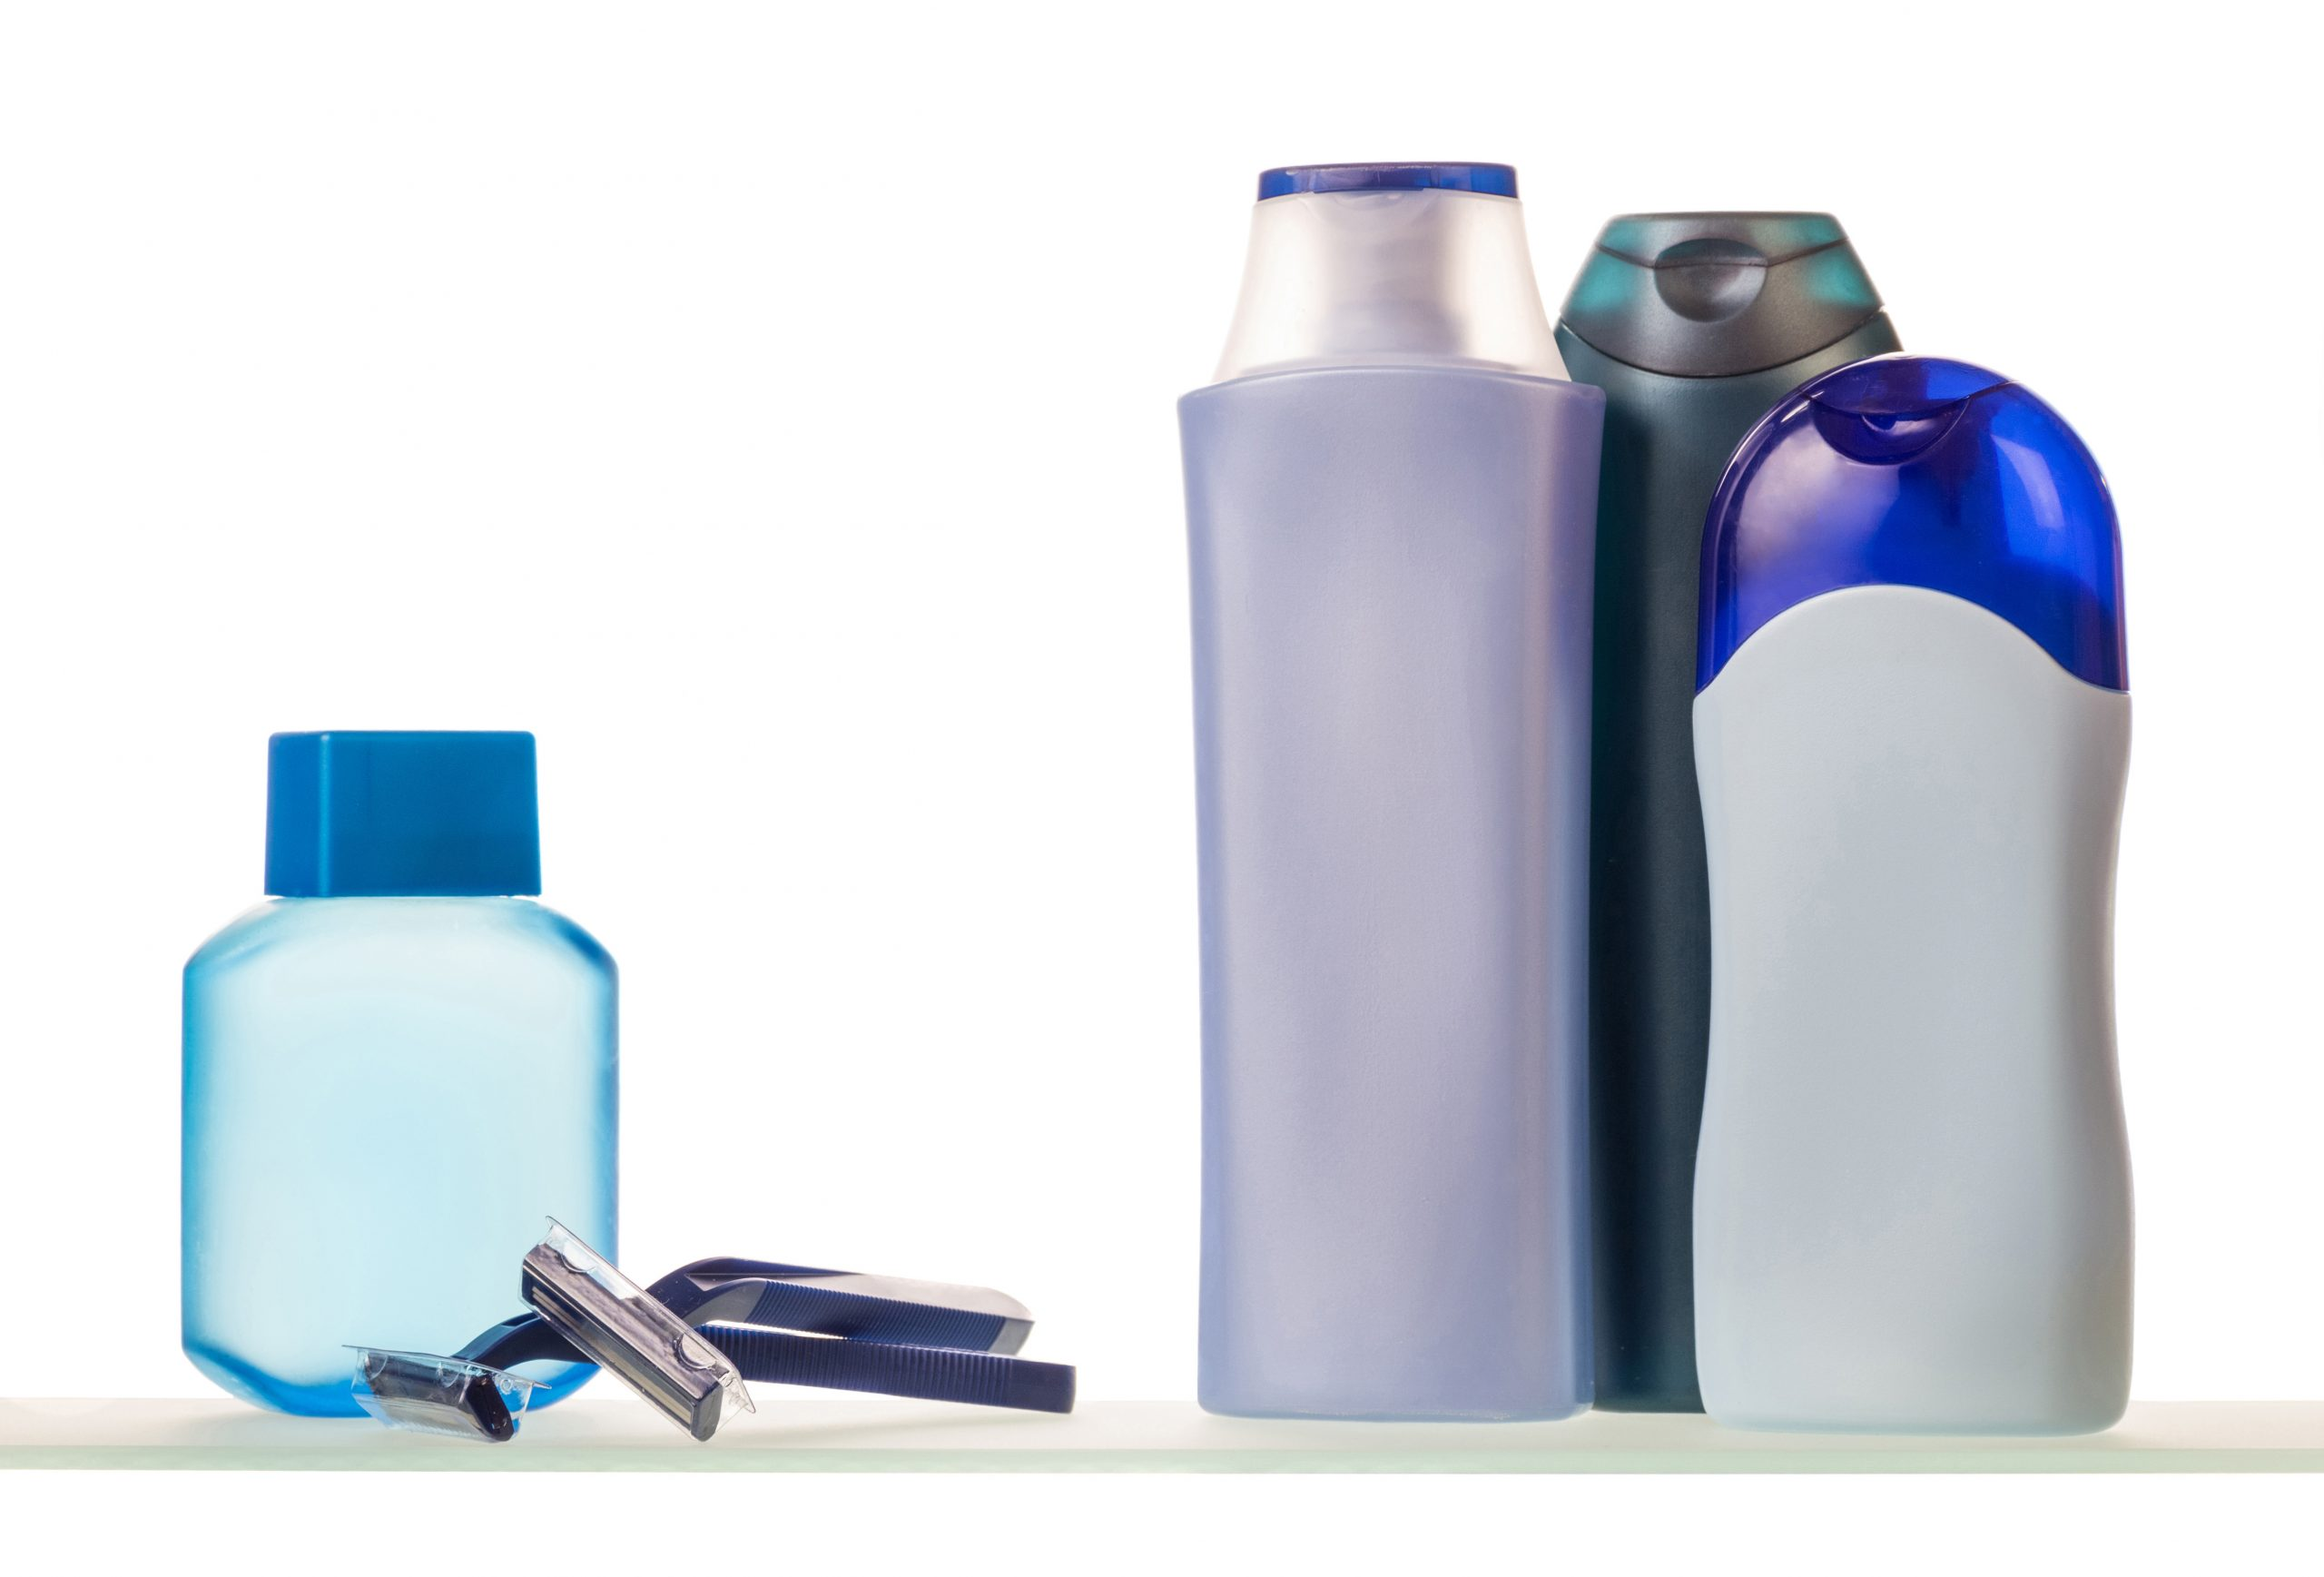 Health and beauty care products